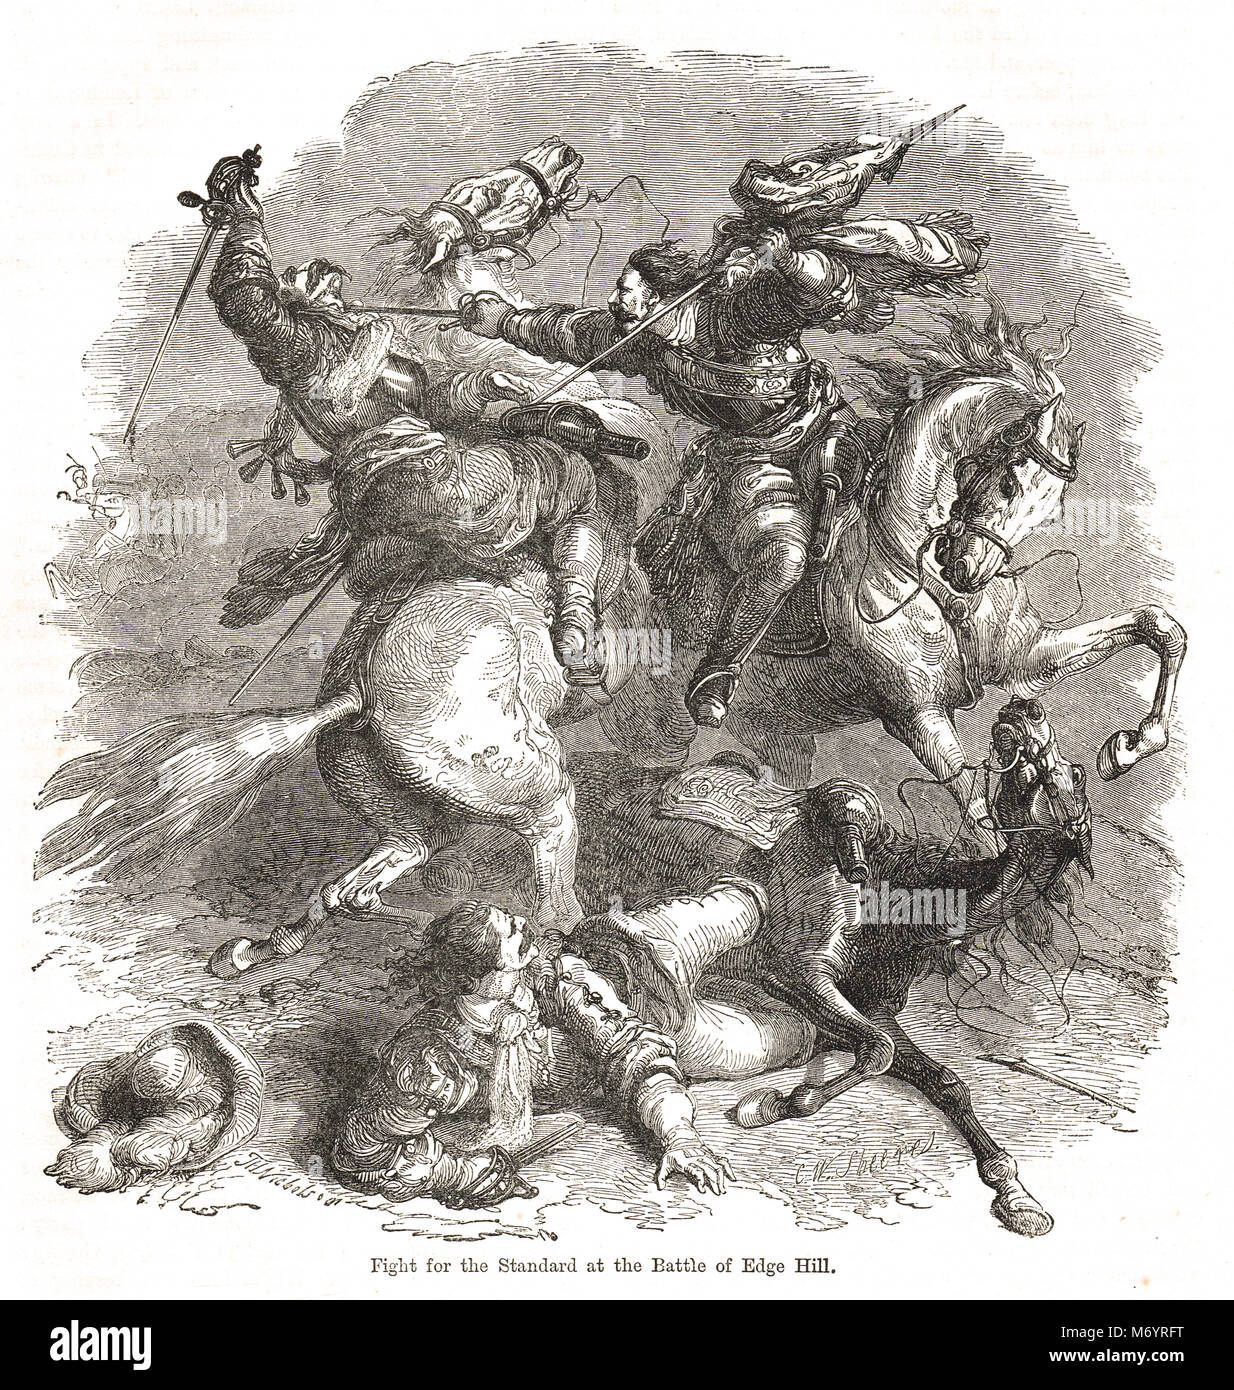 Fight for the Standard, Battle of Edgehill, AKA edge hill, 23 October 1642, first pitched battle of the English - Stock Image